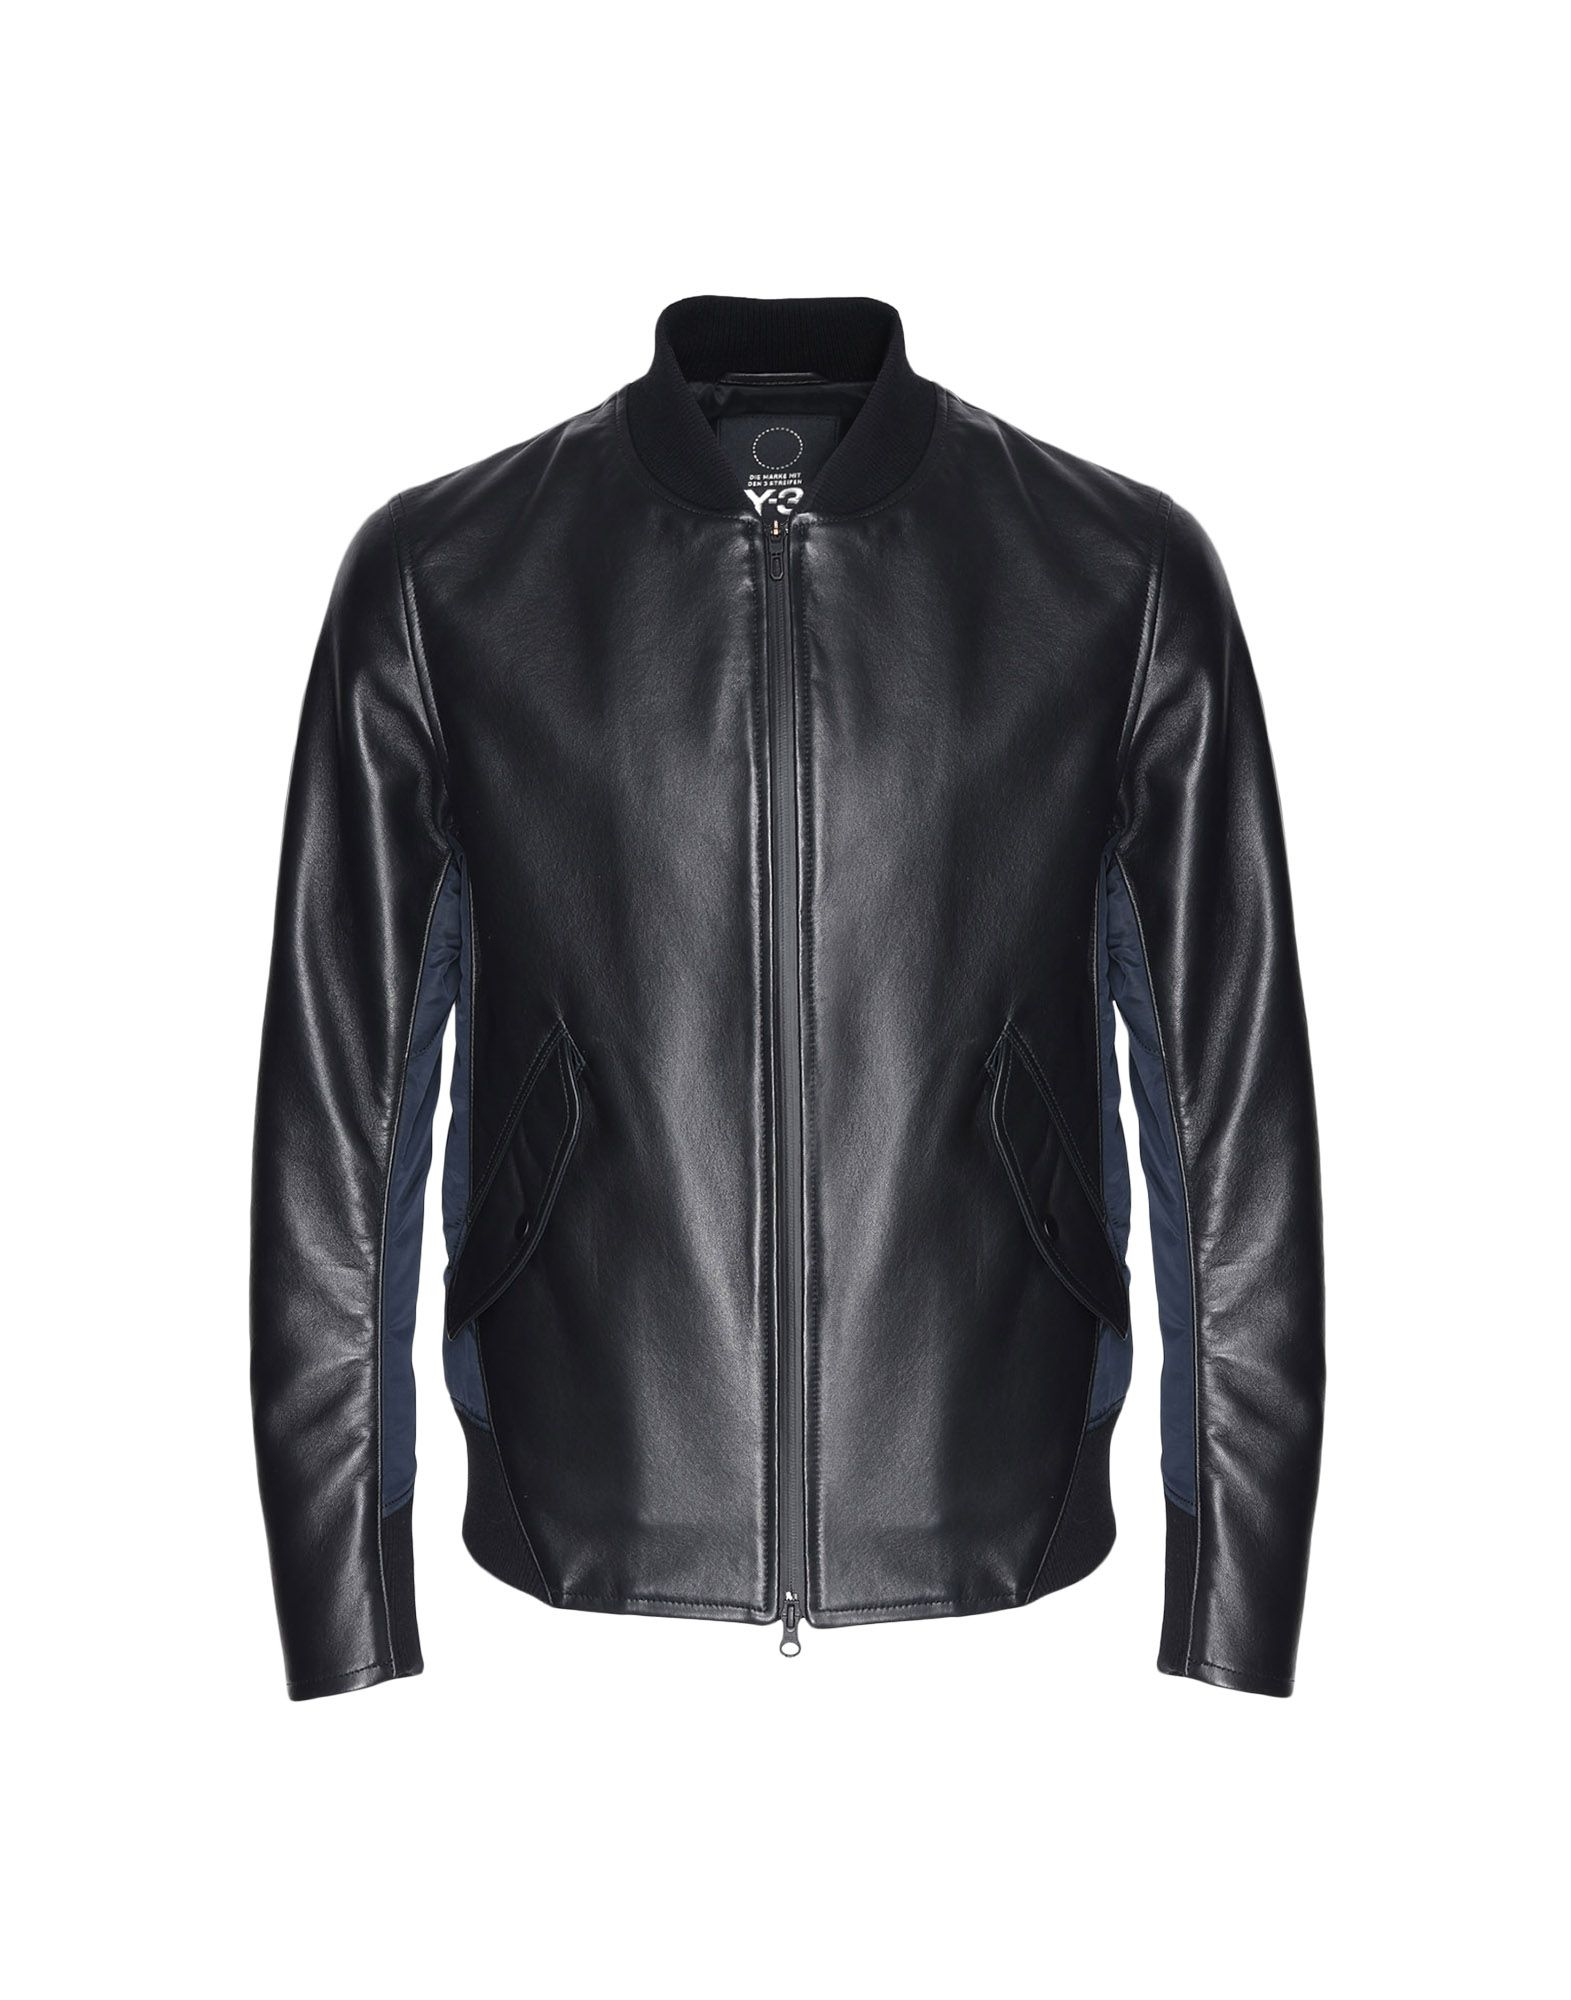 Y-3 Y-3 Bonded Leather Jacket Leather jacket Man f